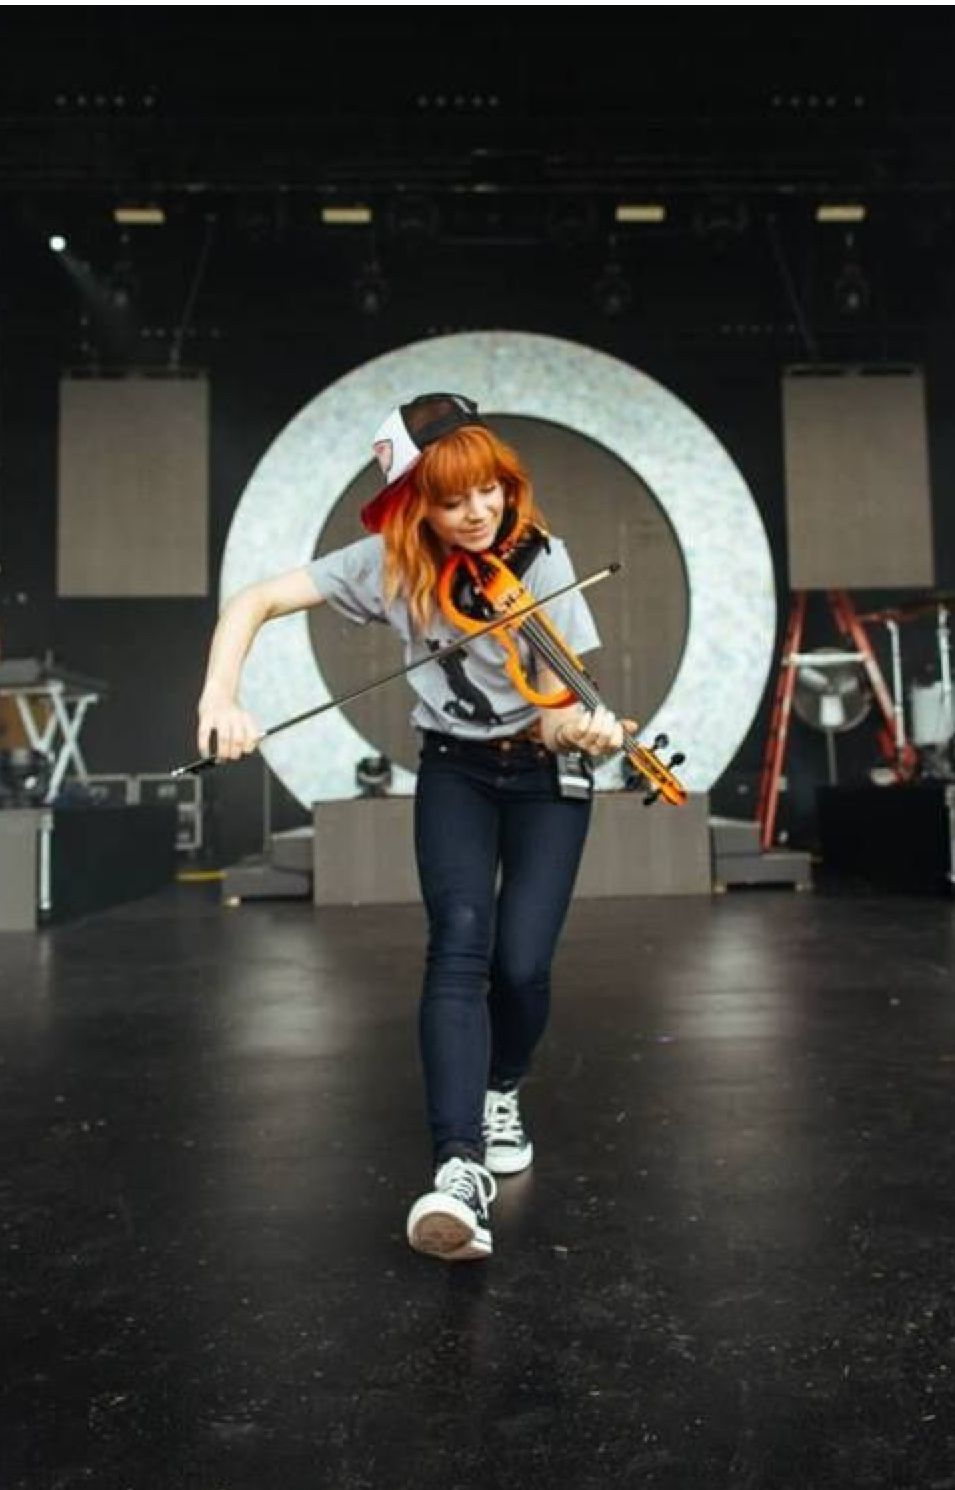 Pin by Fencyr on Lindsey Stirling Lindsey stirling